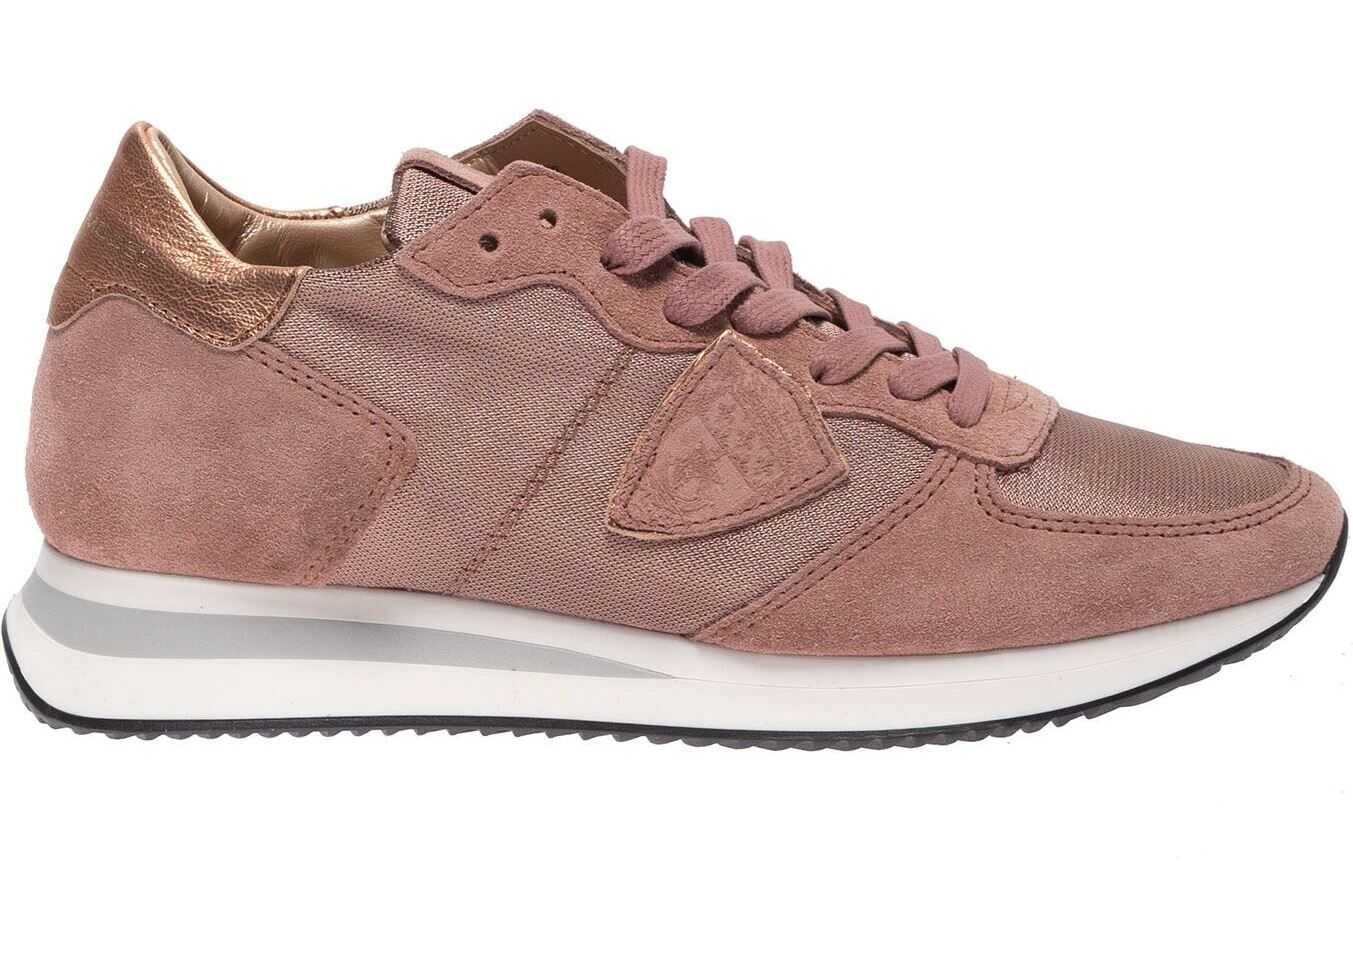 Philippe Model Trpx Sneakers In Pink Pink